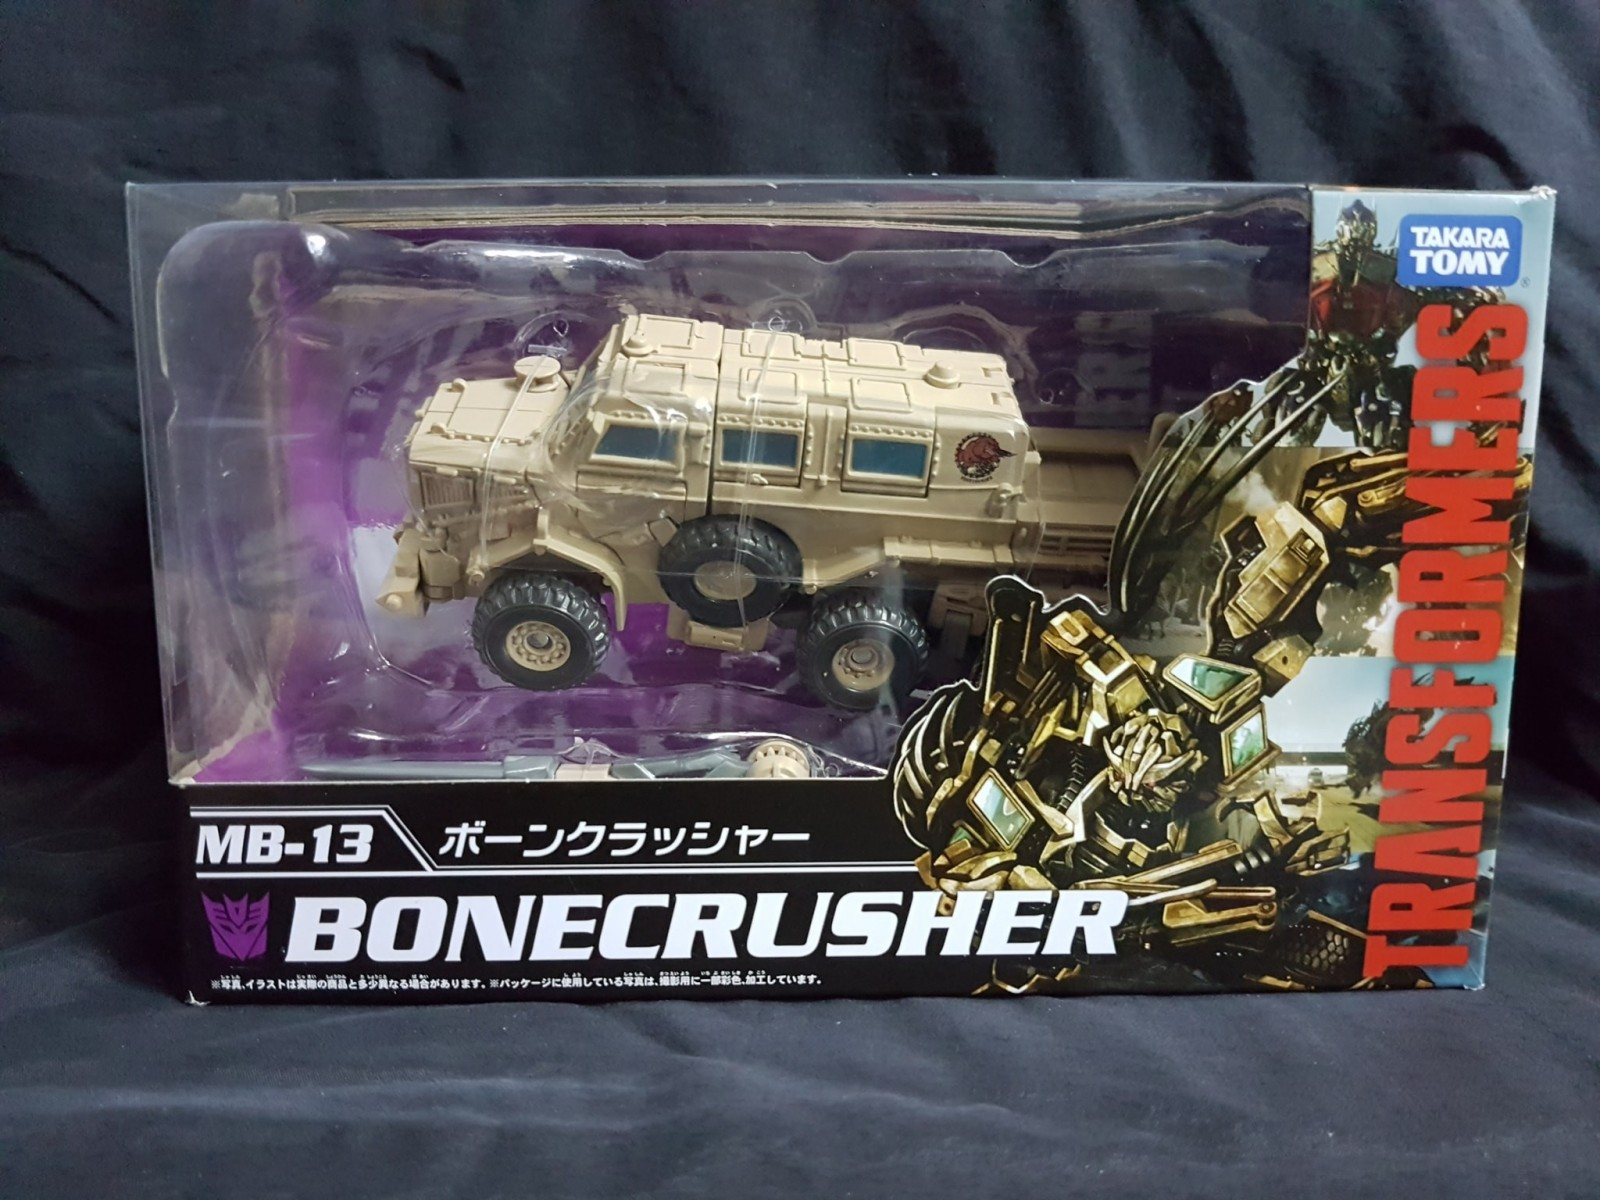 Transformers News: In Hand Images of Takara Transformers Movie The Best Lockdown, Megatron, Bonecrusher, and Jazz